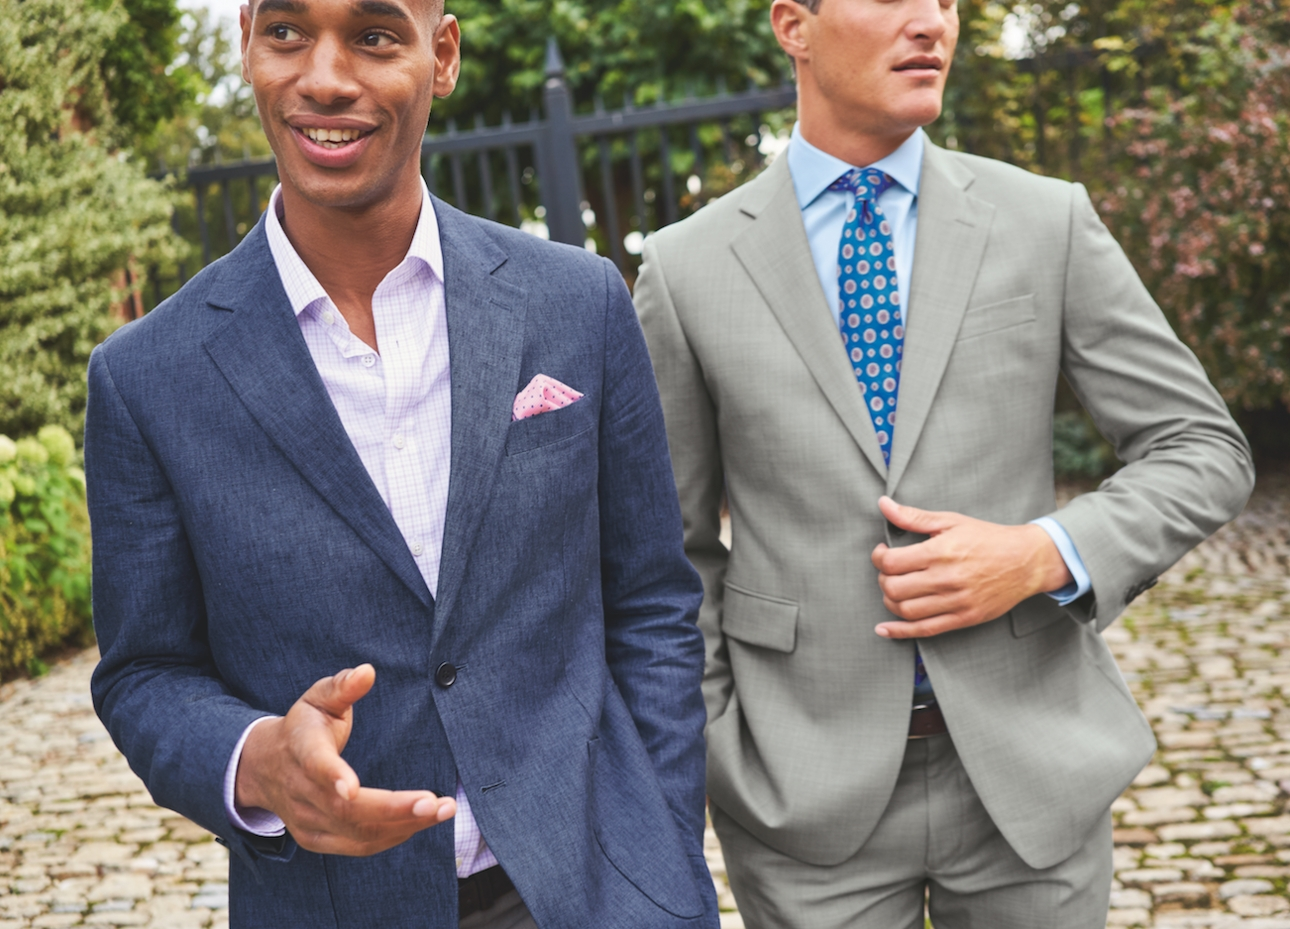 two male models in suites one grey with tie and one blue no tie